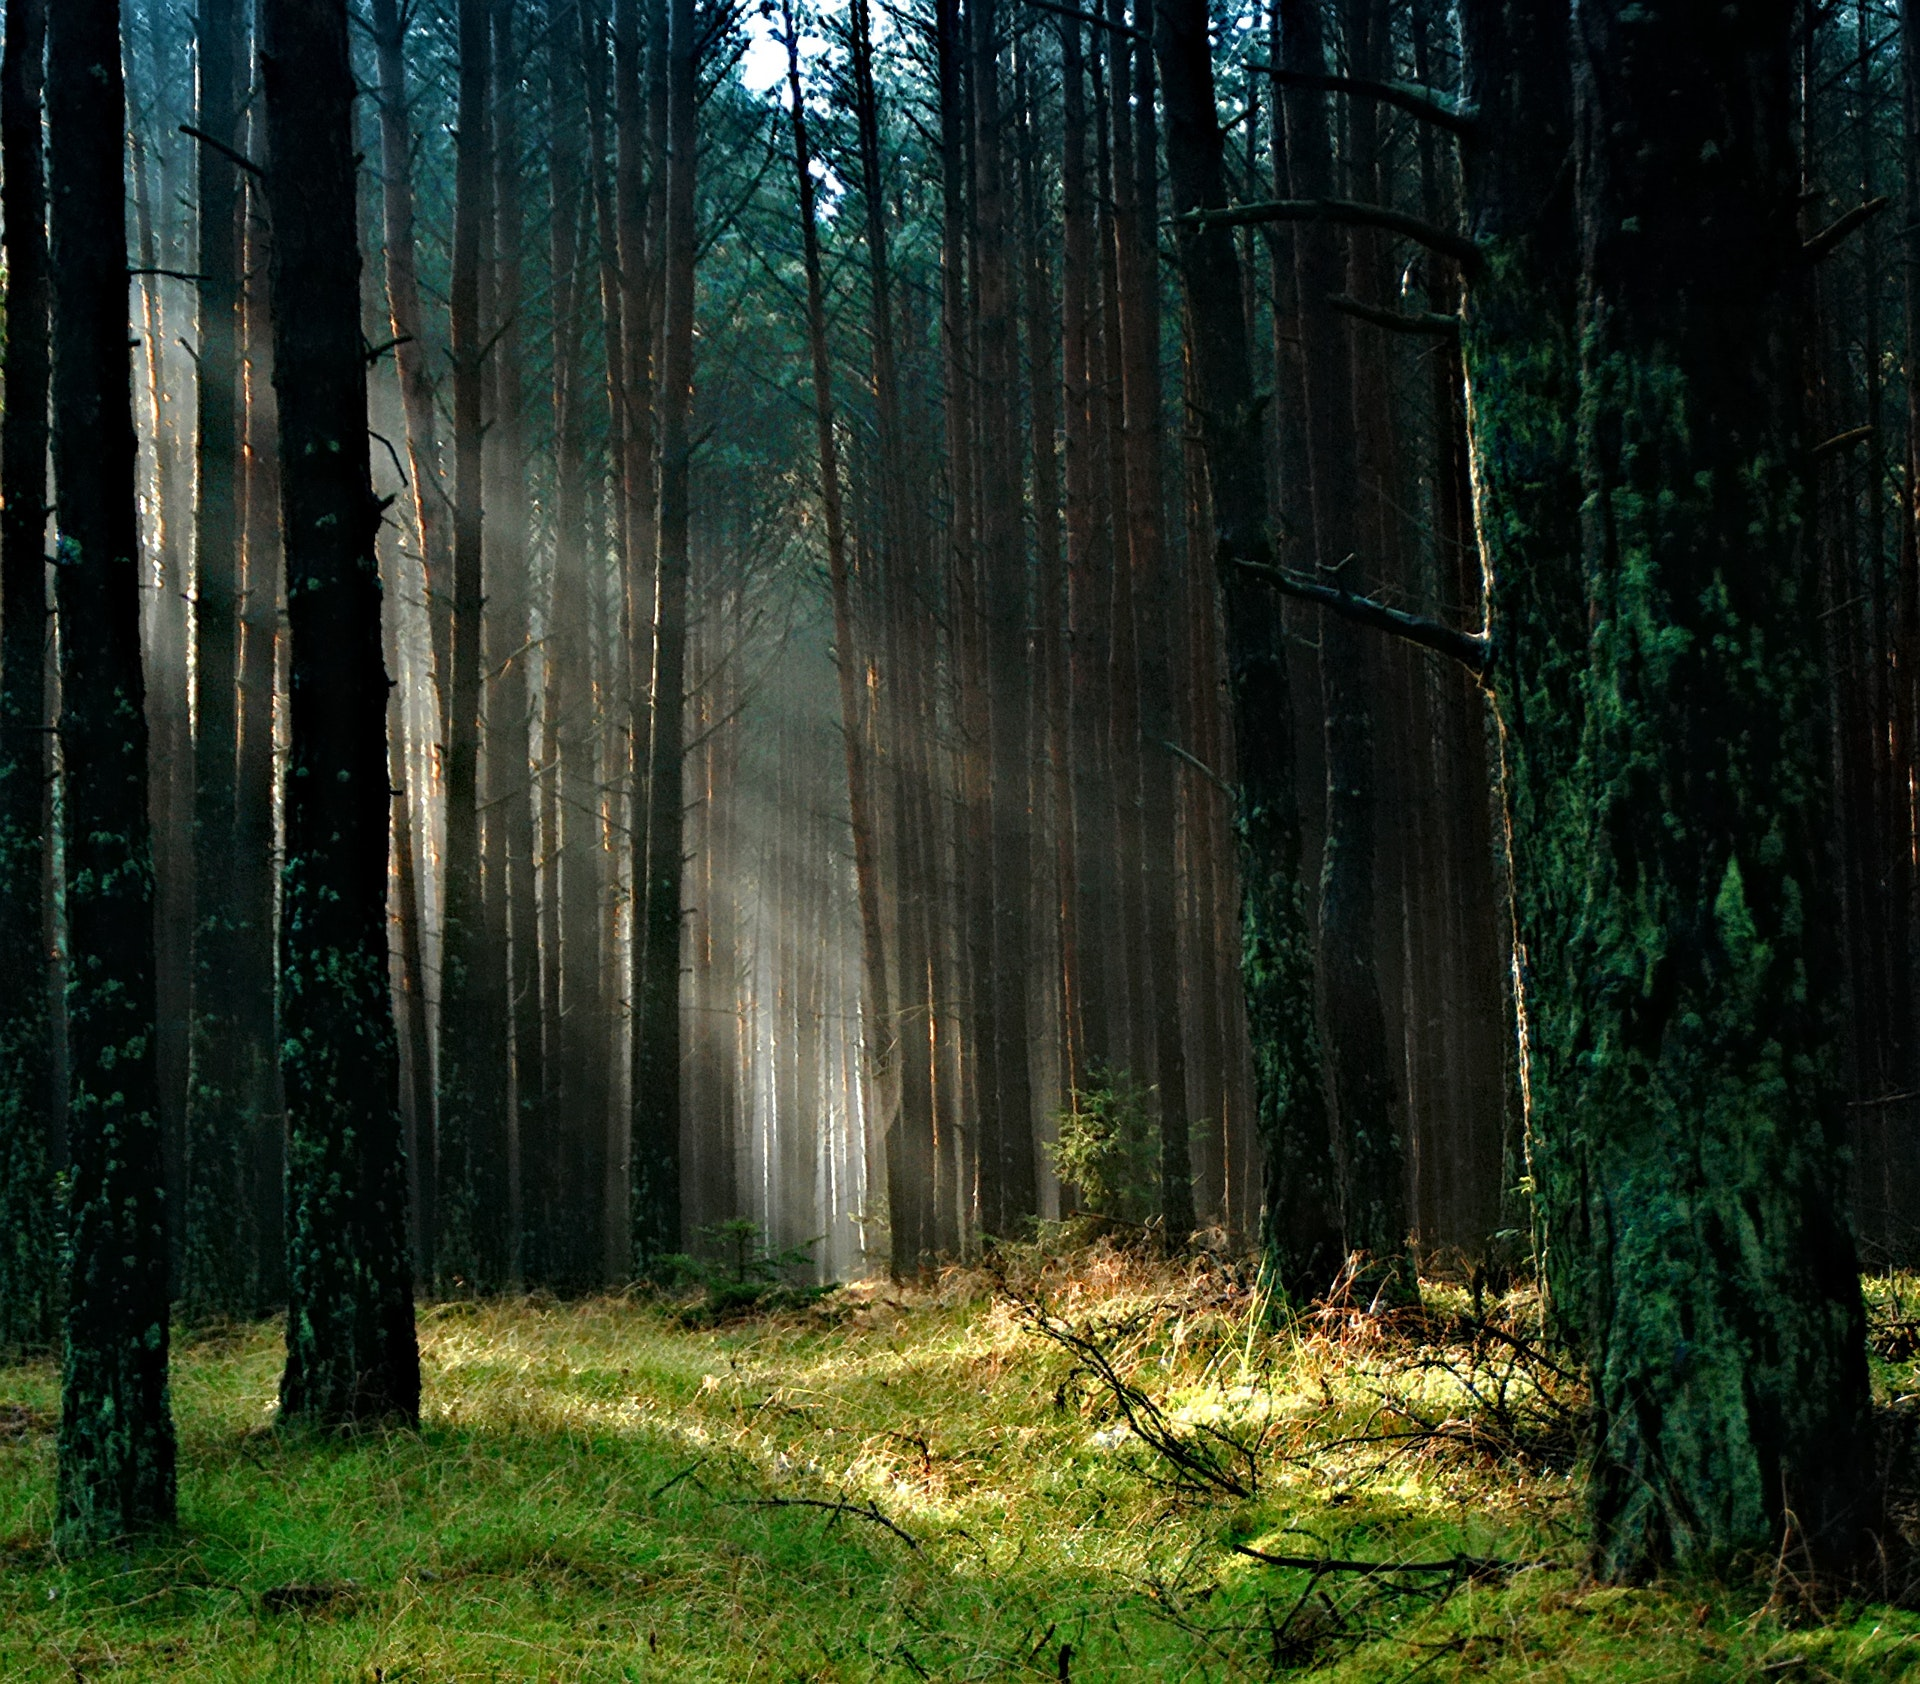 'Anyone Can Walk in the Woods, But Who Truly Knows Them?'